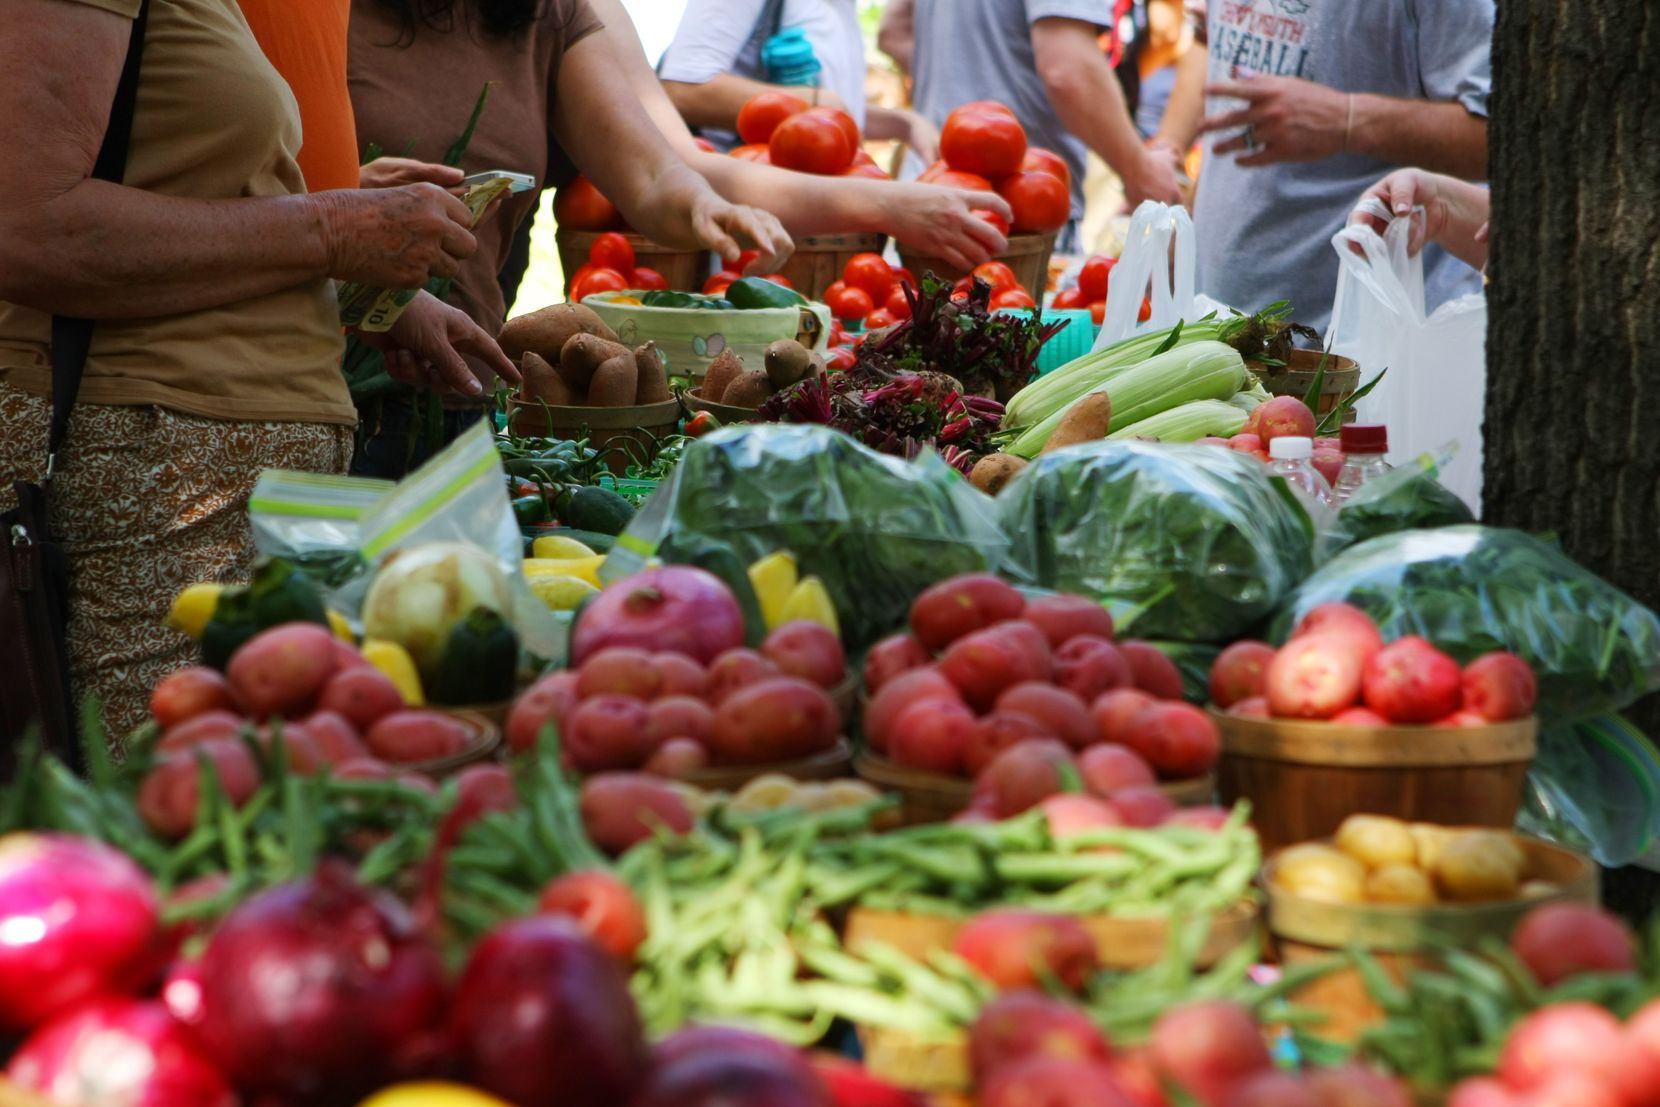 Marketgoers browse the vegetables at the Historic McKinney Farmers Market in Chestnut Square Historic Village.